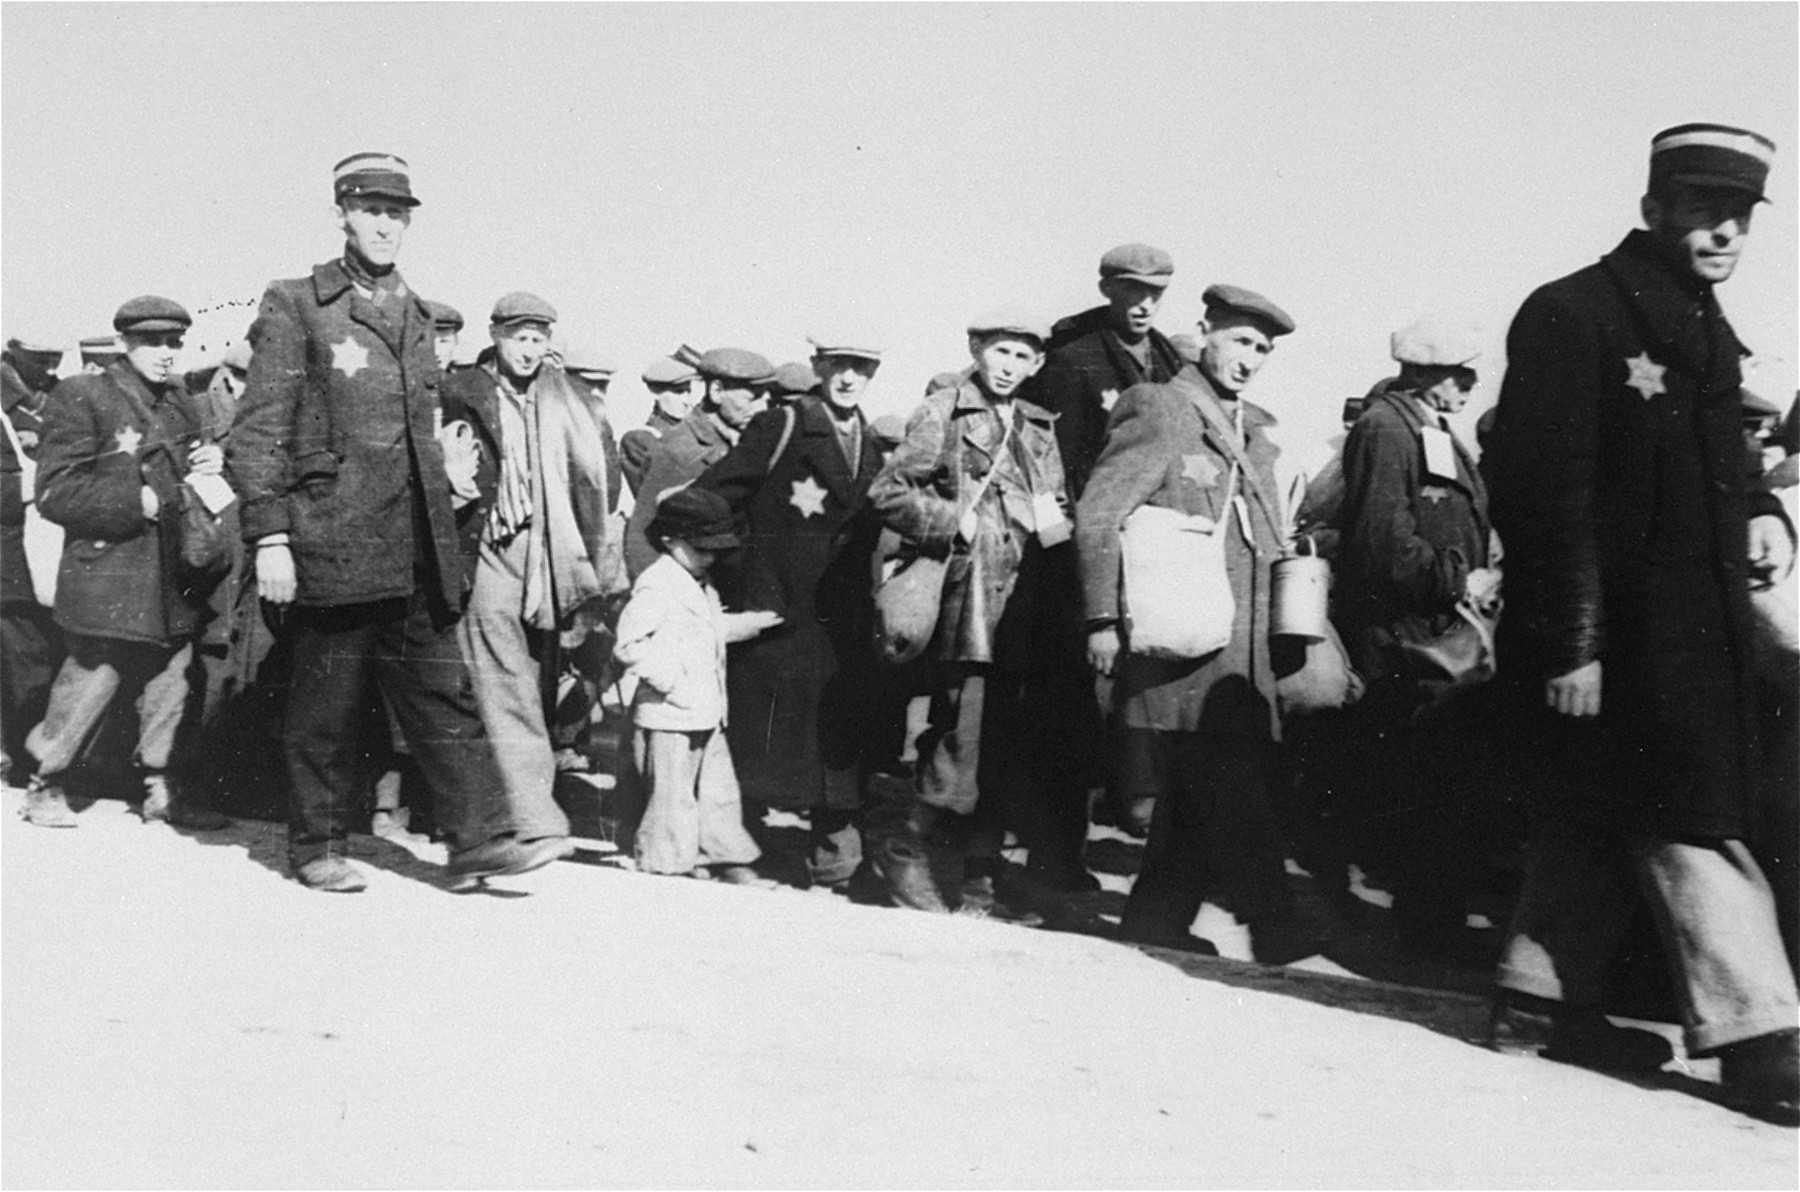 Jewish police escort a group of Jews who have been rounded-up for deportation in the Lodz ghetto.